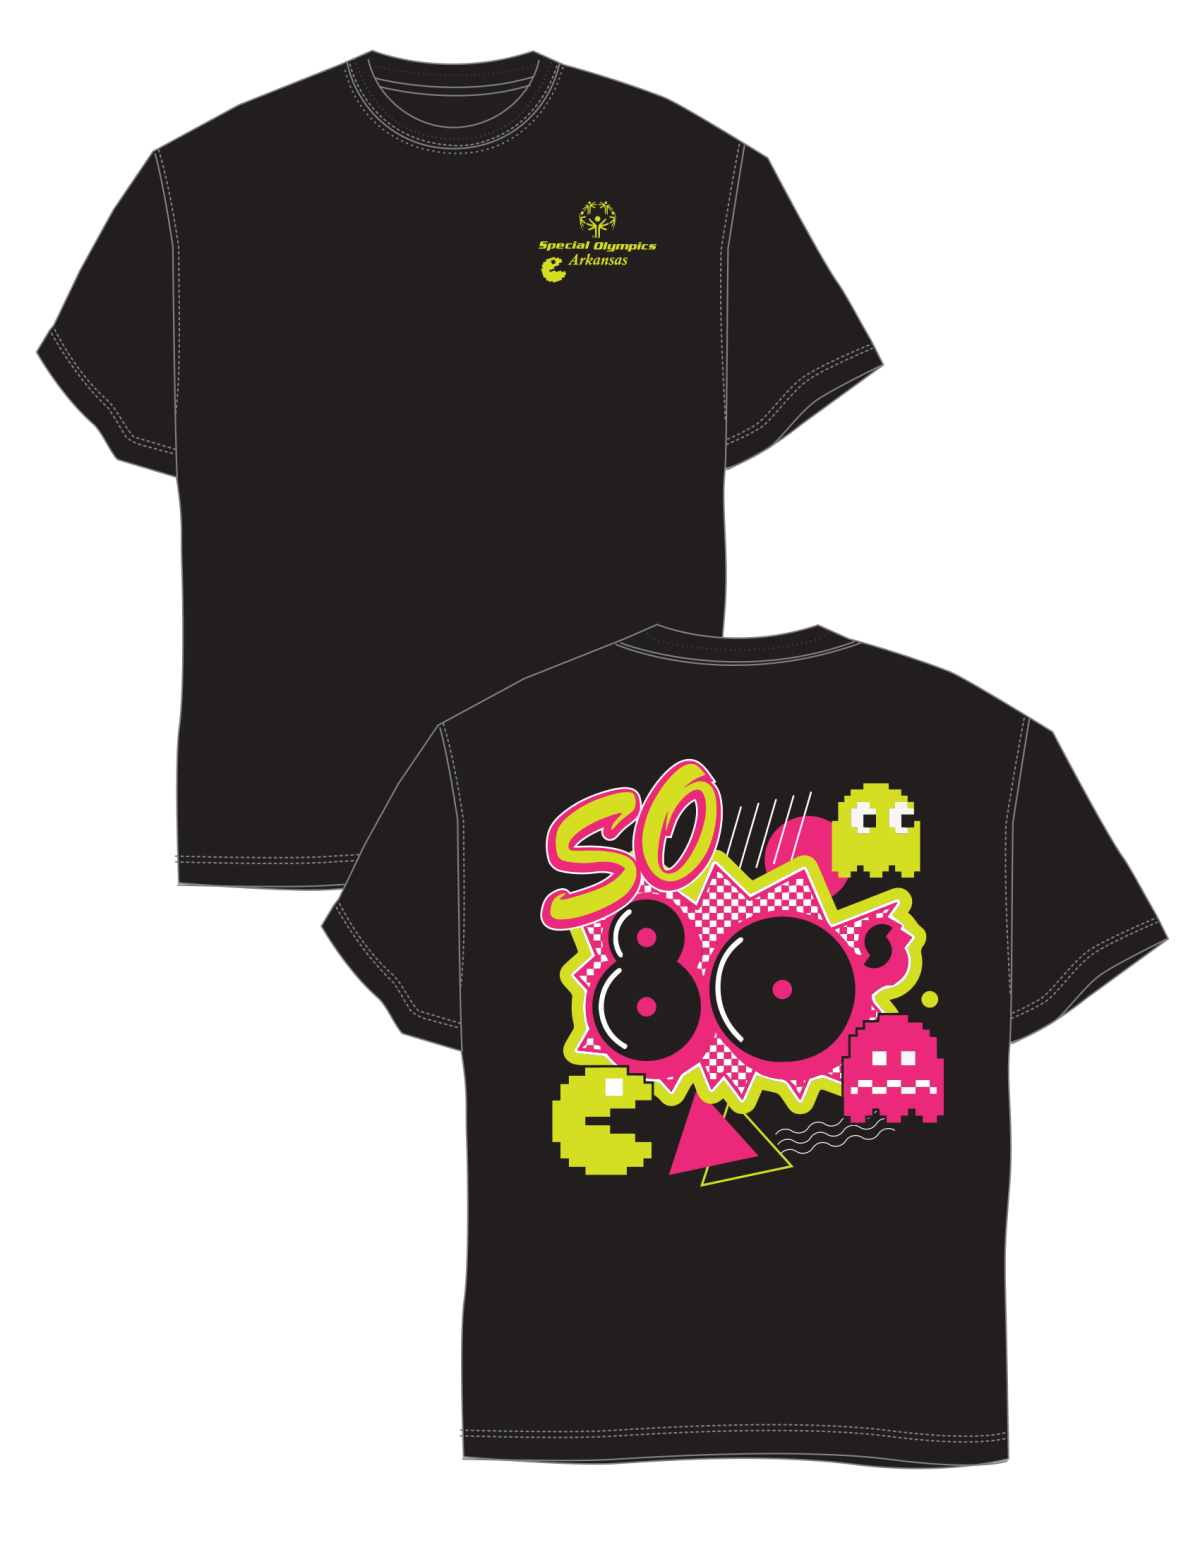 2019 Special Olympics- Arkansas Team shirts